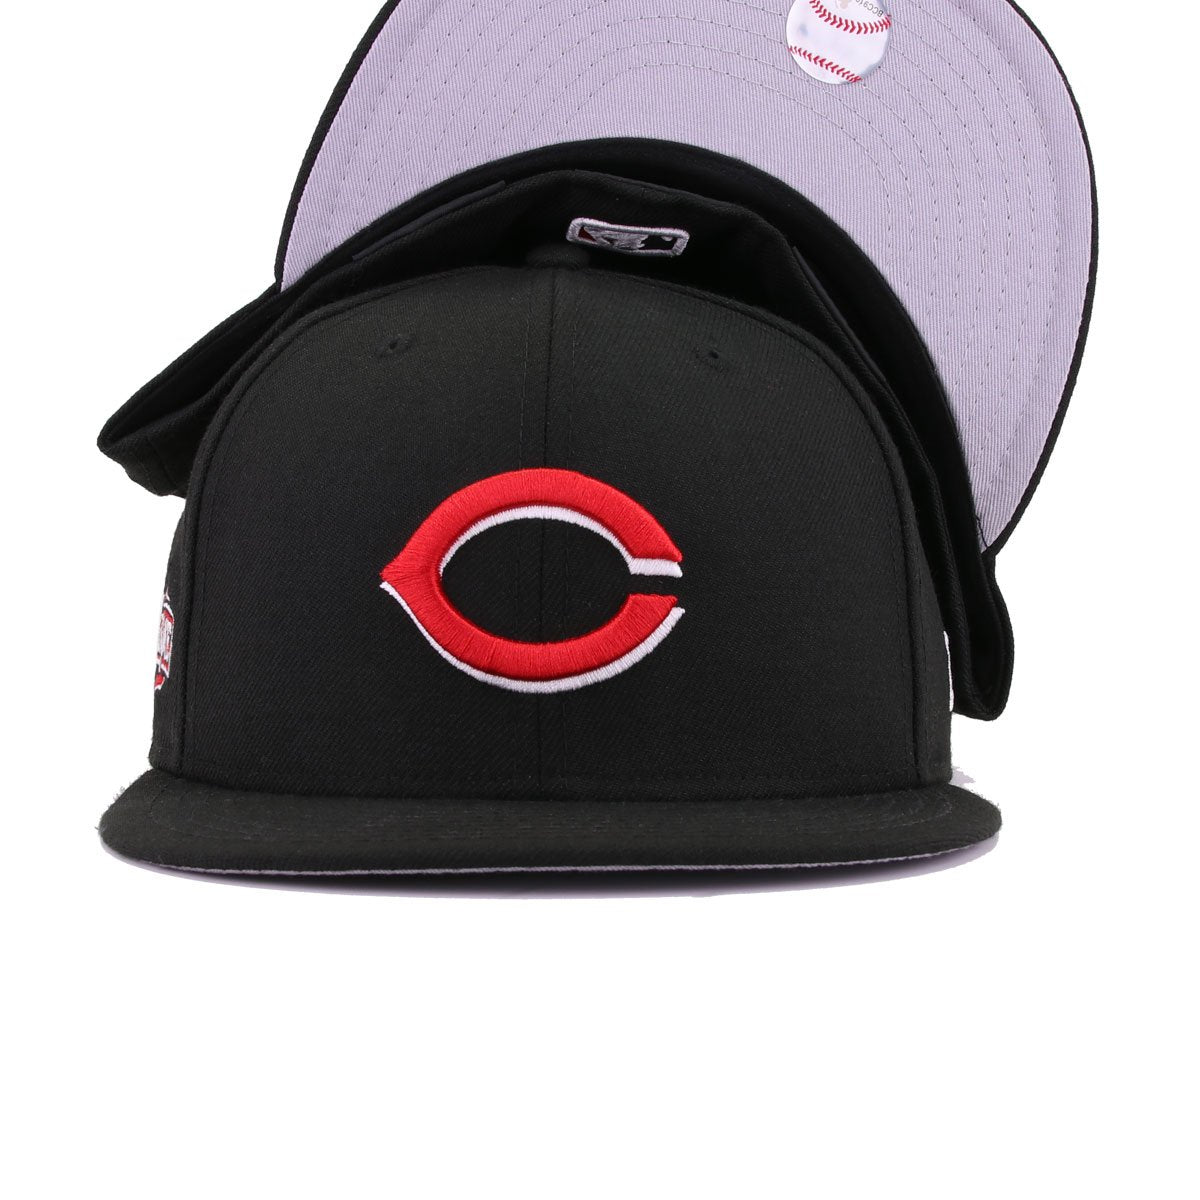 wholesale dealer 7dbb9 45840 ... discount code for cincinnati reds black scarlet 2015 all star game new  era 59fifty fitted 93349